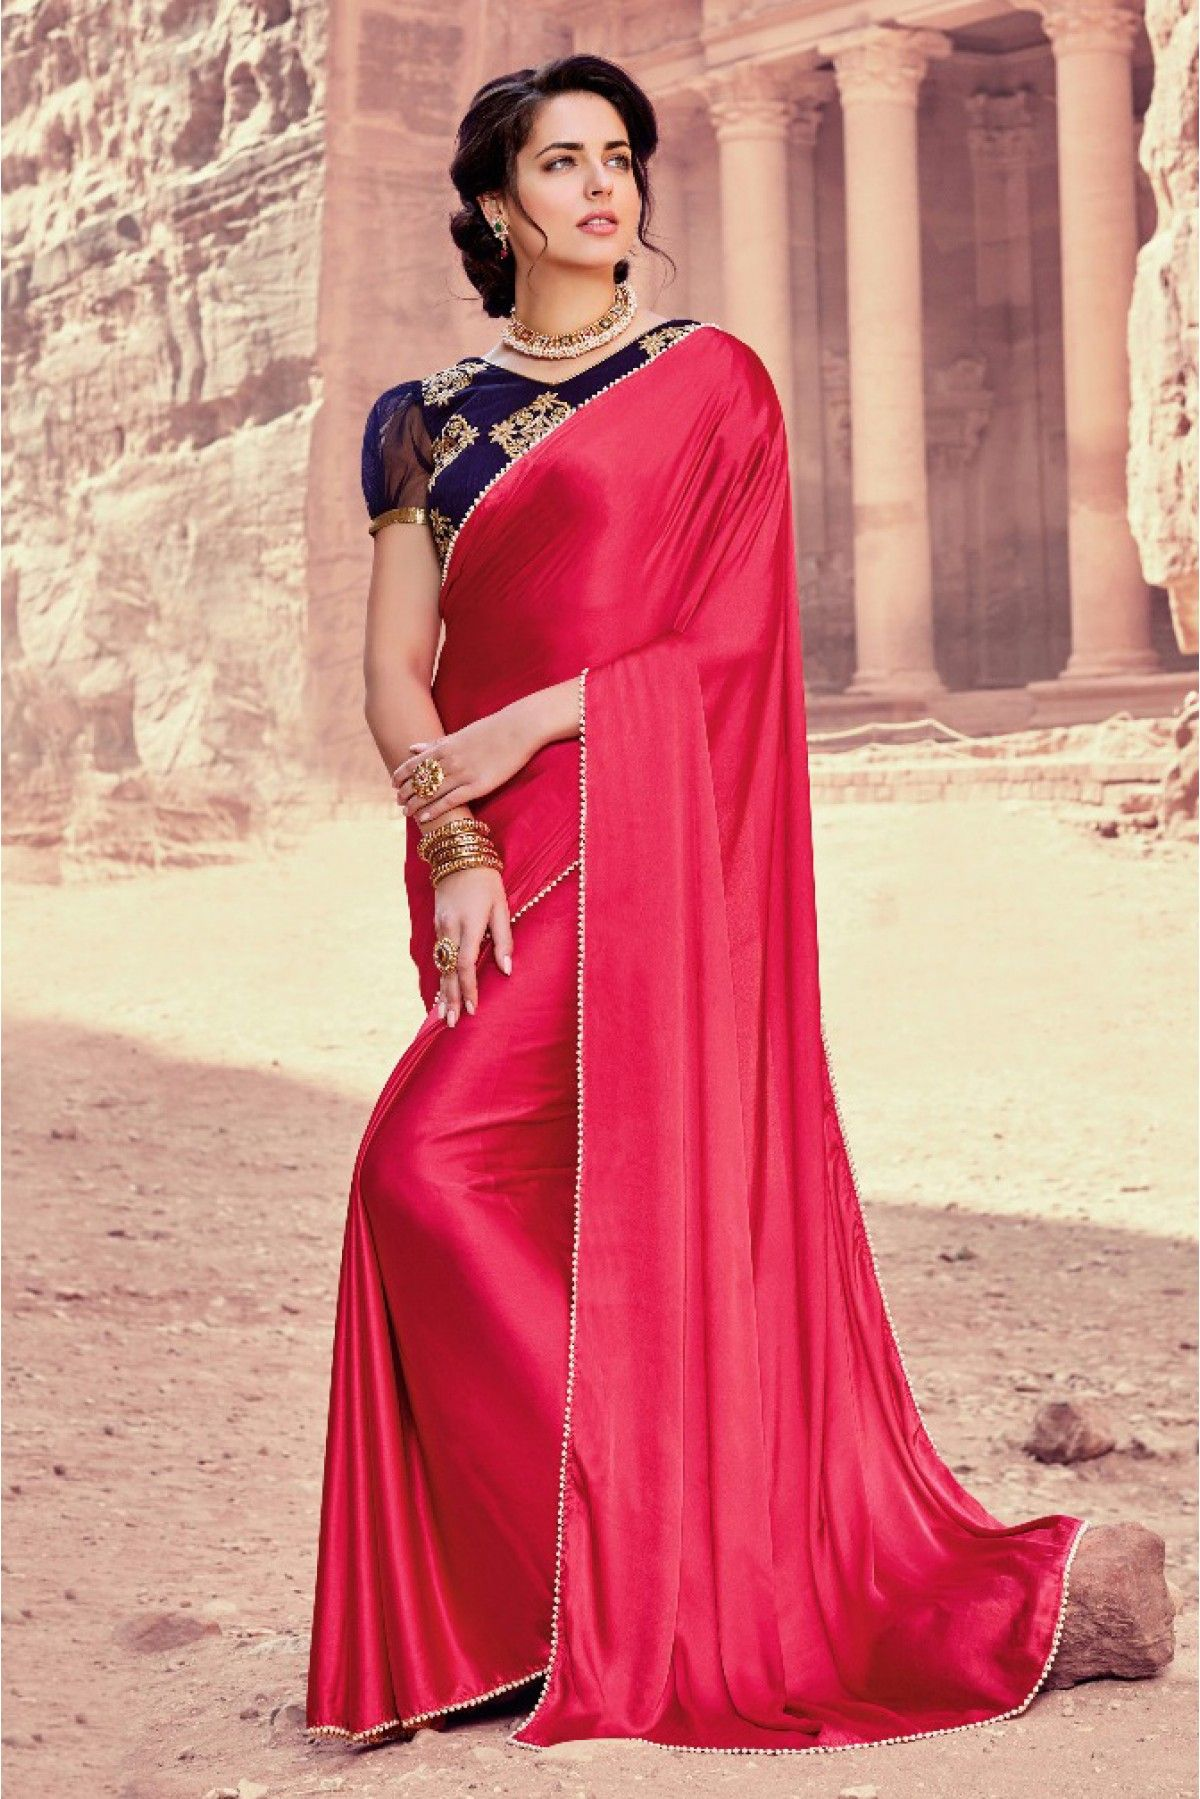 d95db3a537 Buy Satin And Silk Saree In Pink Colour @ ninecolours.com. Worldwide Free  Shipping Available!